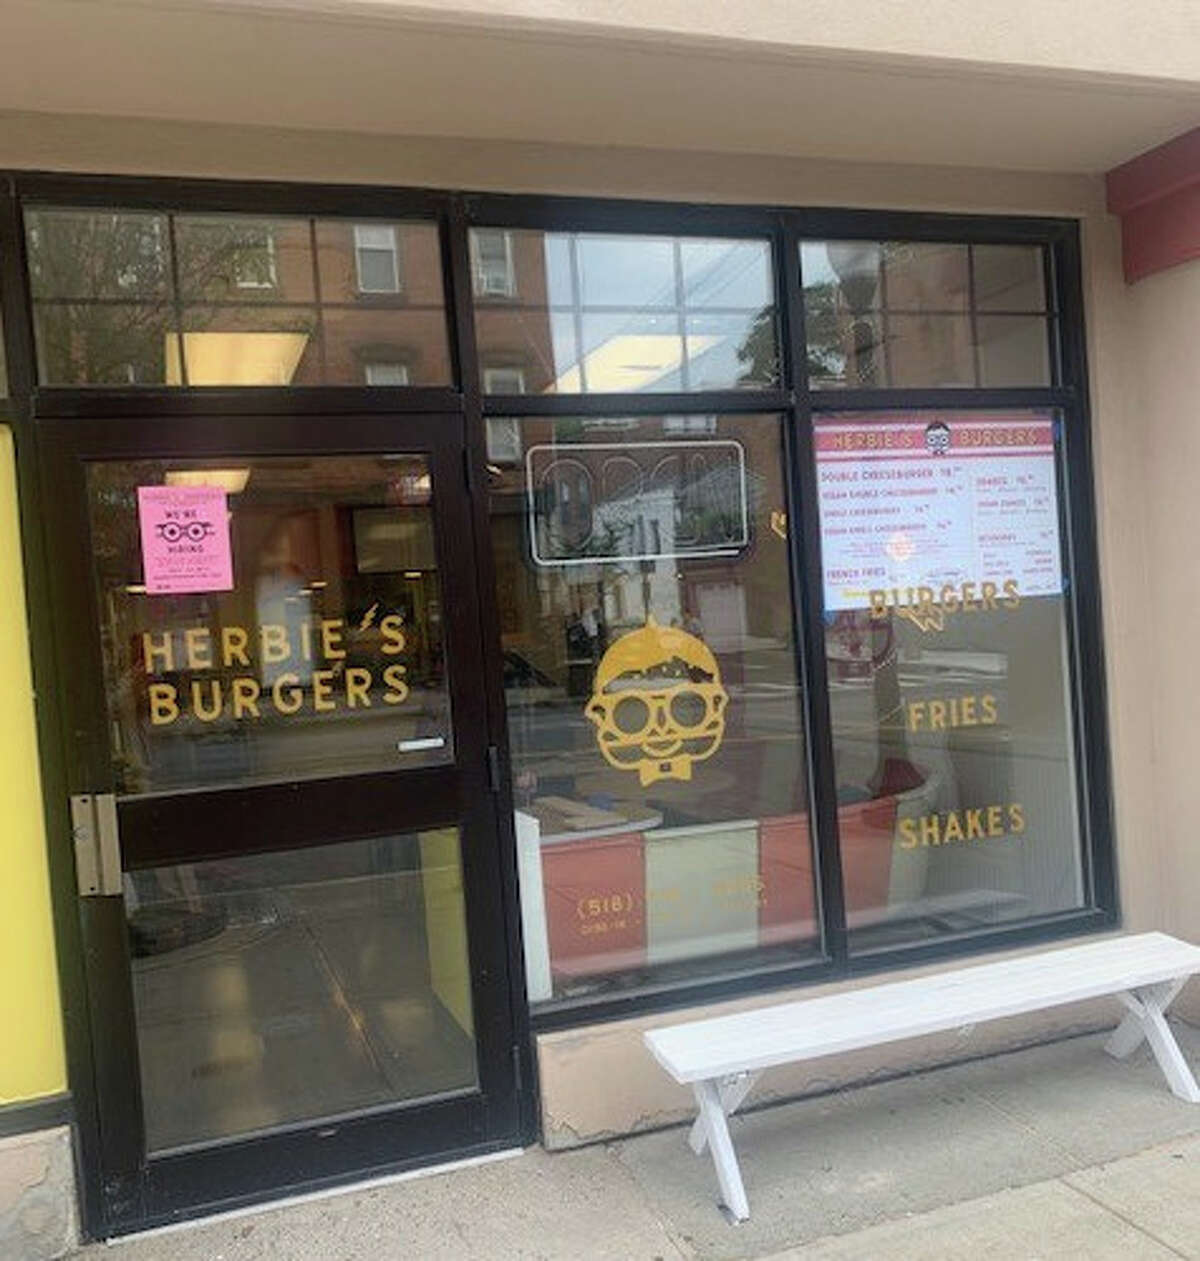 Herbie's Burgers is being developed to open in late September at 196 Lark St., Albany, at the corner of Lark and Spring streets.